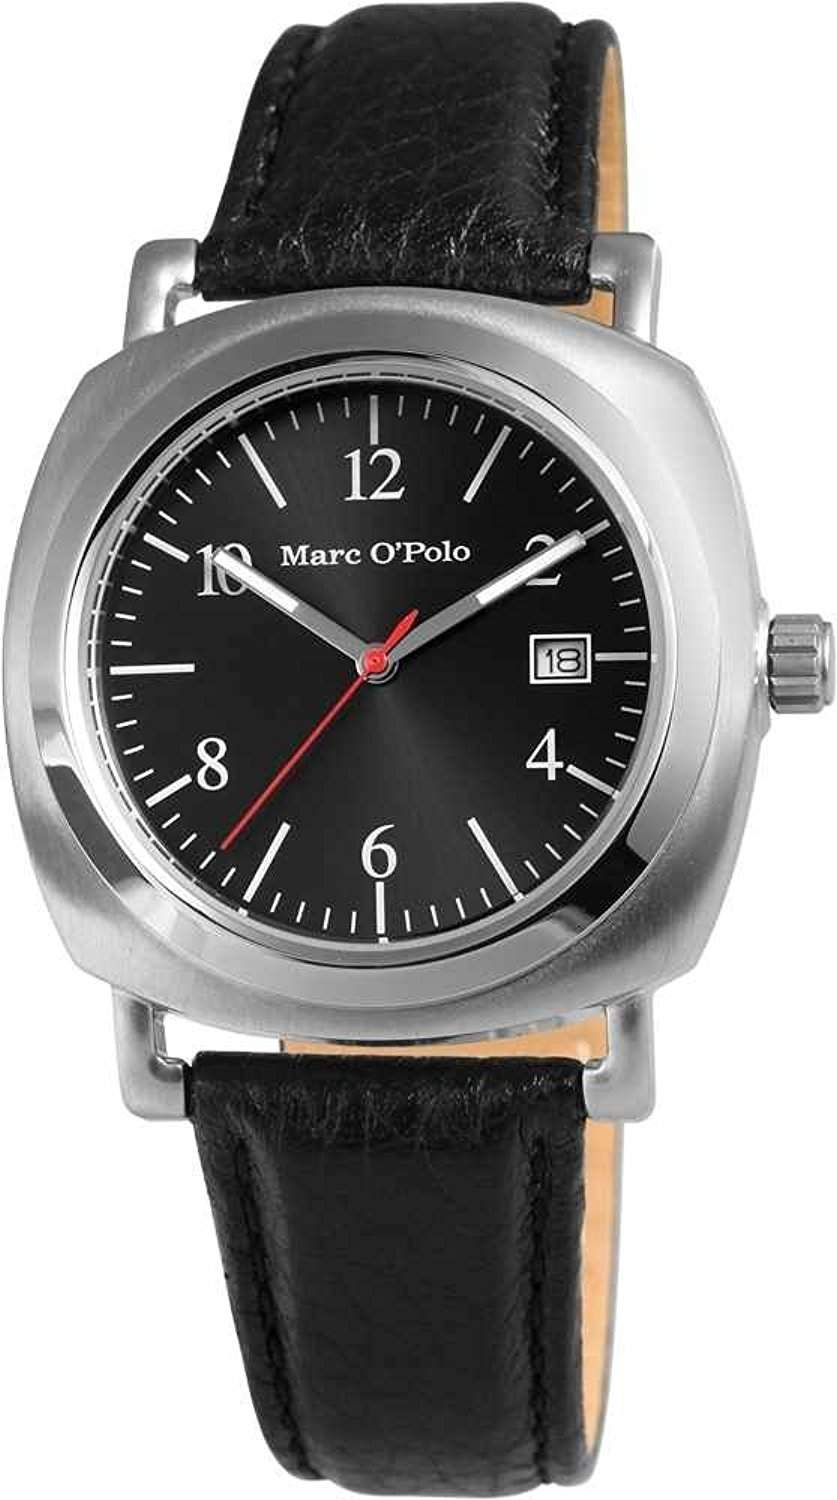 Marc OPolo Damen-Armbanduhr Analog Quarz 4211503